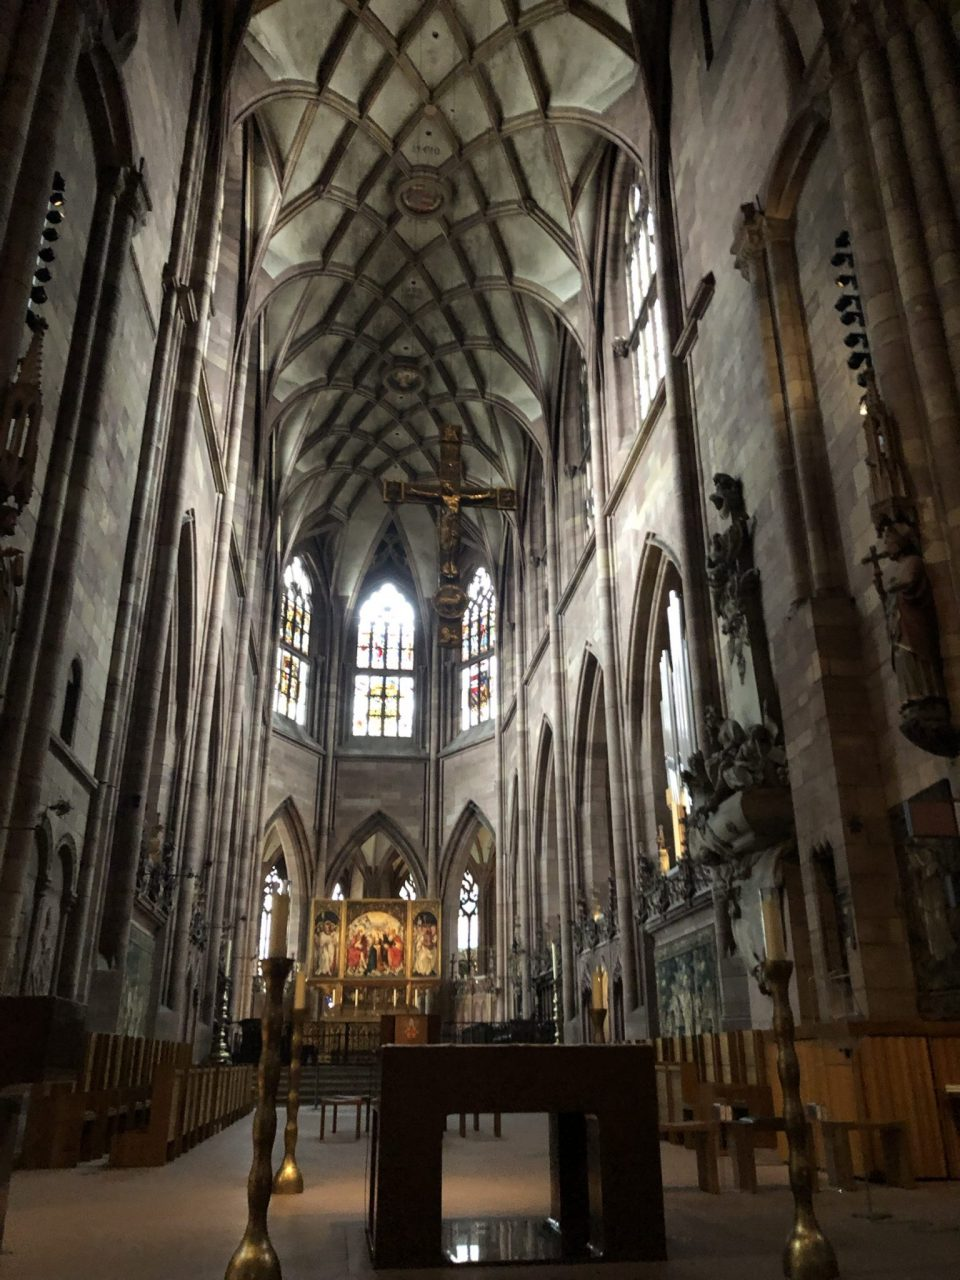 Interior of Freiburg Münster